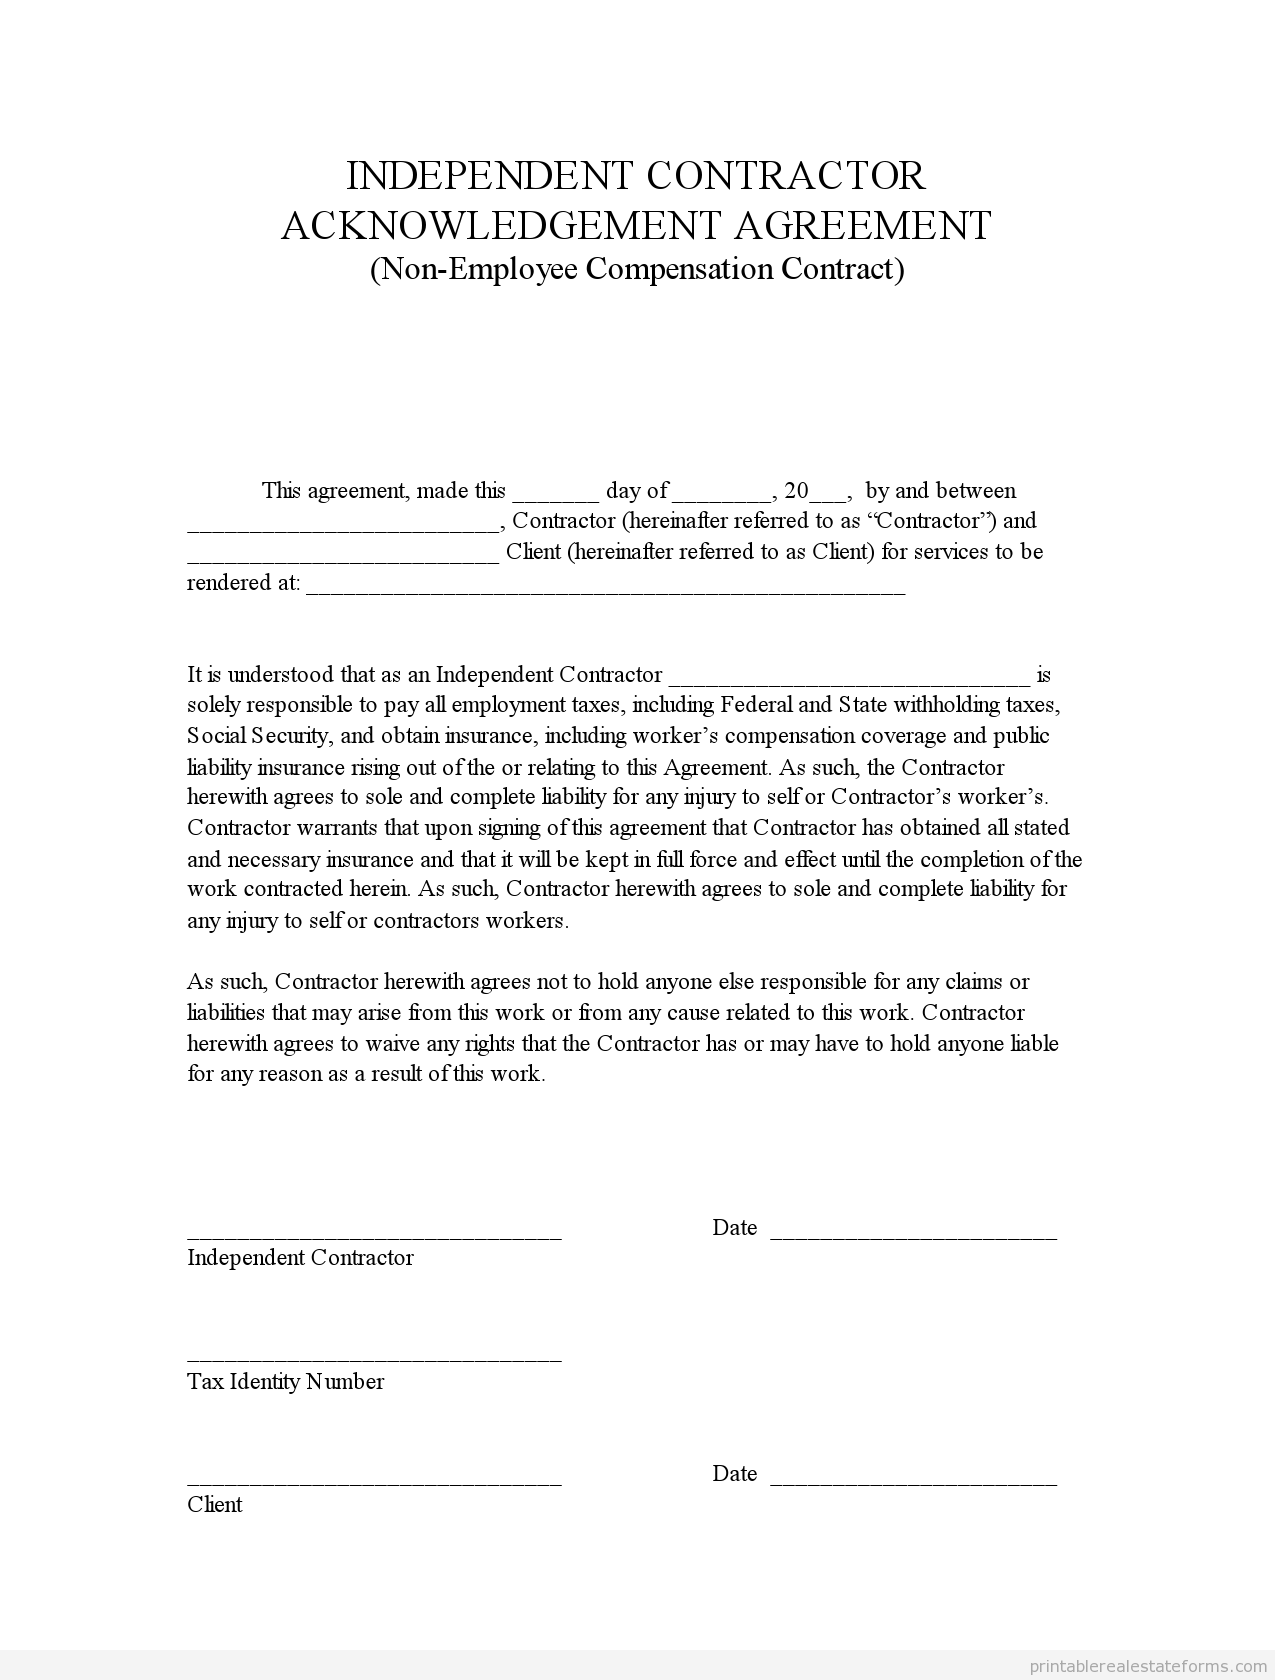 Printable authorization to release information template 2015 – Authorization to Release Information Template